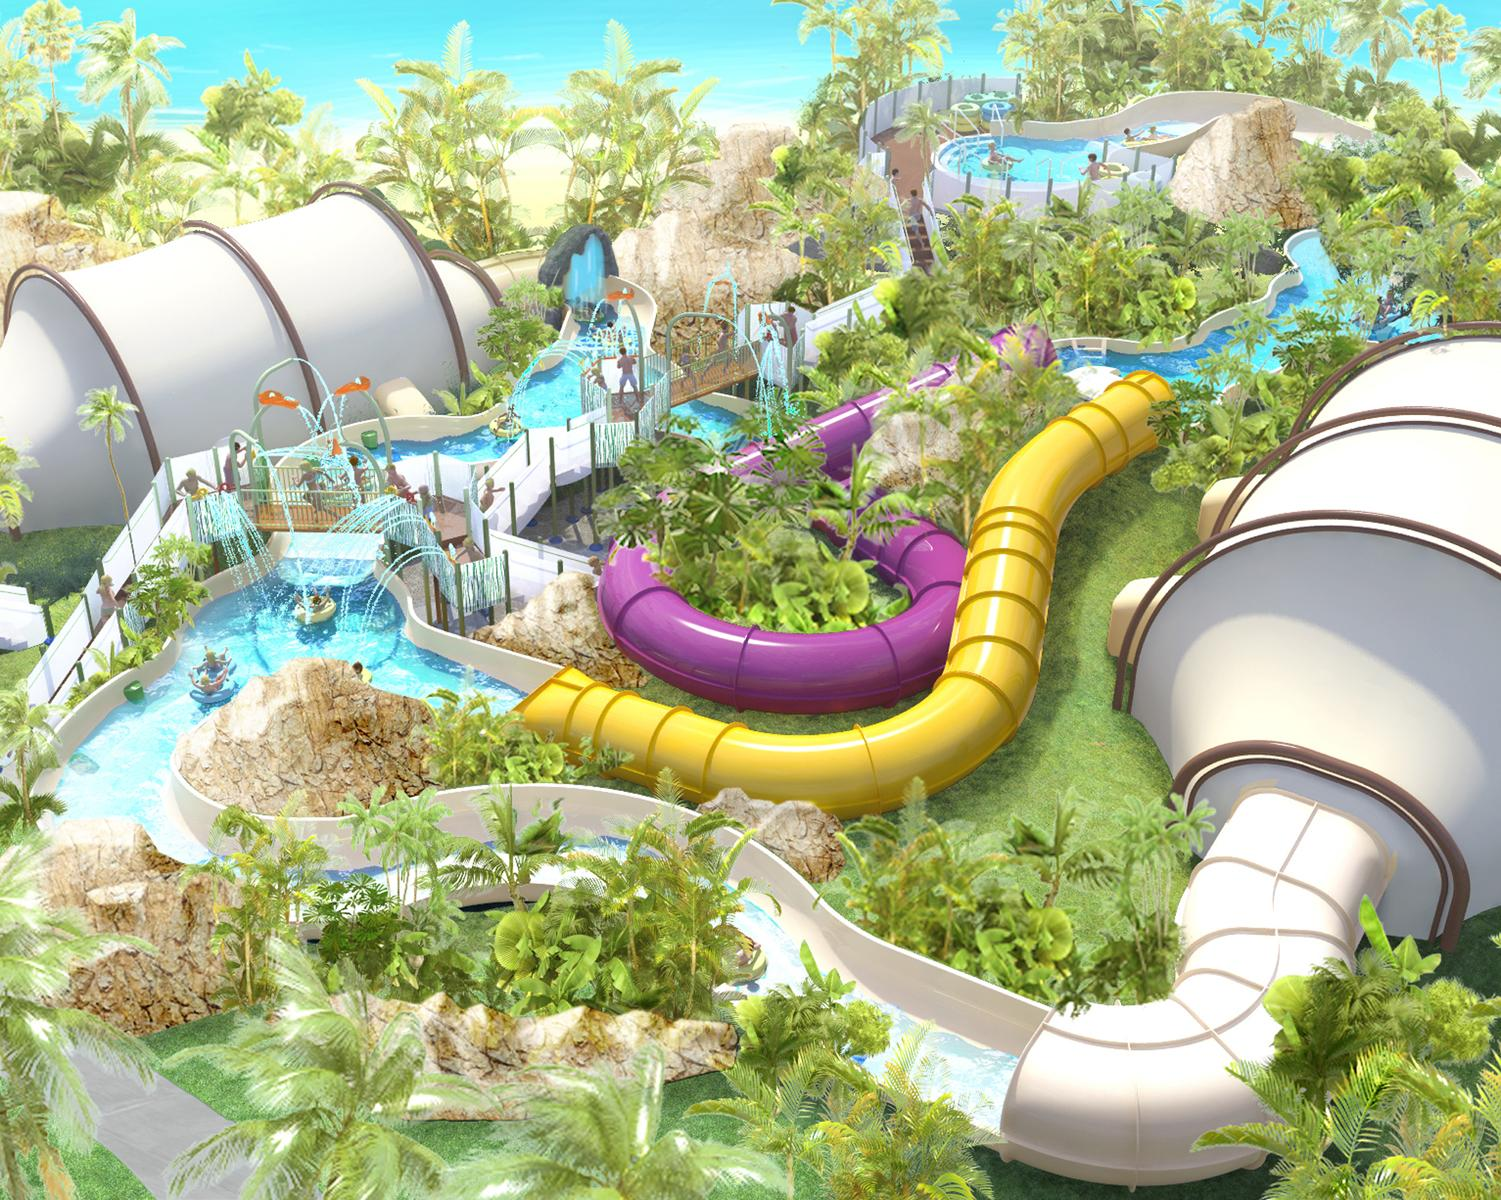 RiverQuest is a family adventure ride that combines the thrills of traditional river rides and waterslides with multi-sensory dreamscapes